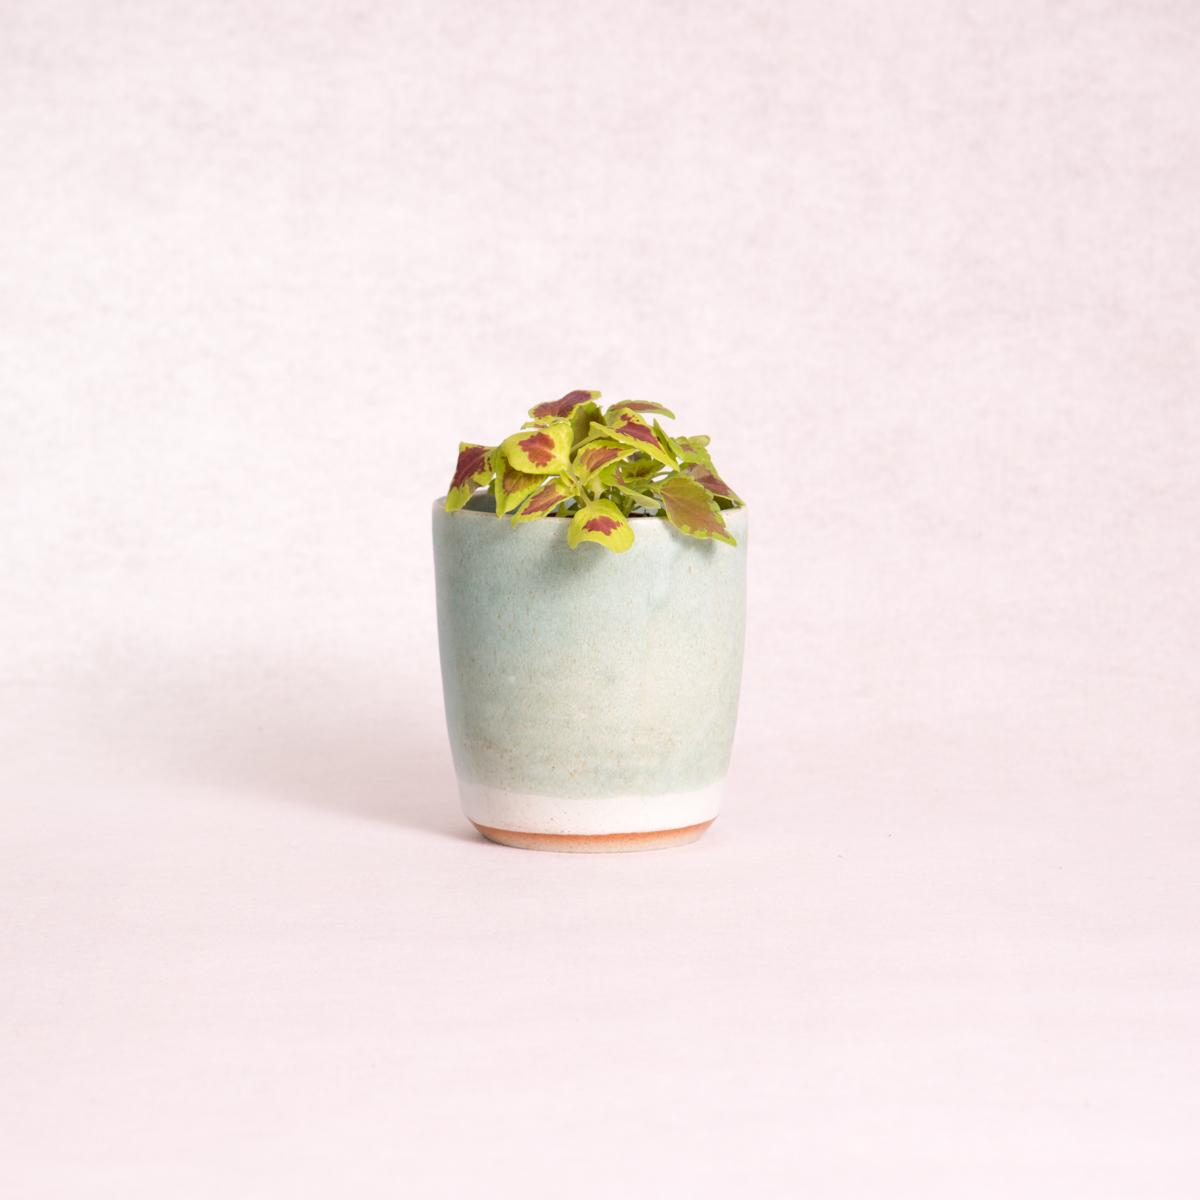 Ceramic Planter Pot - Small (Assorted Colours!) - Ceramic Planter - Throw Some Seeds - Australian gardening gifts and eco products online!